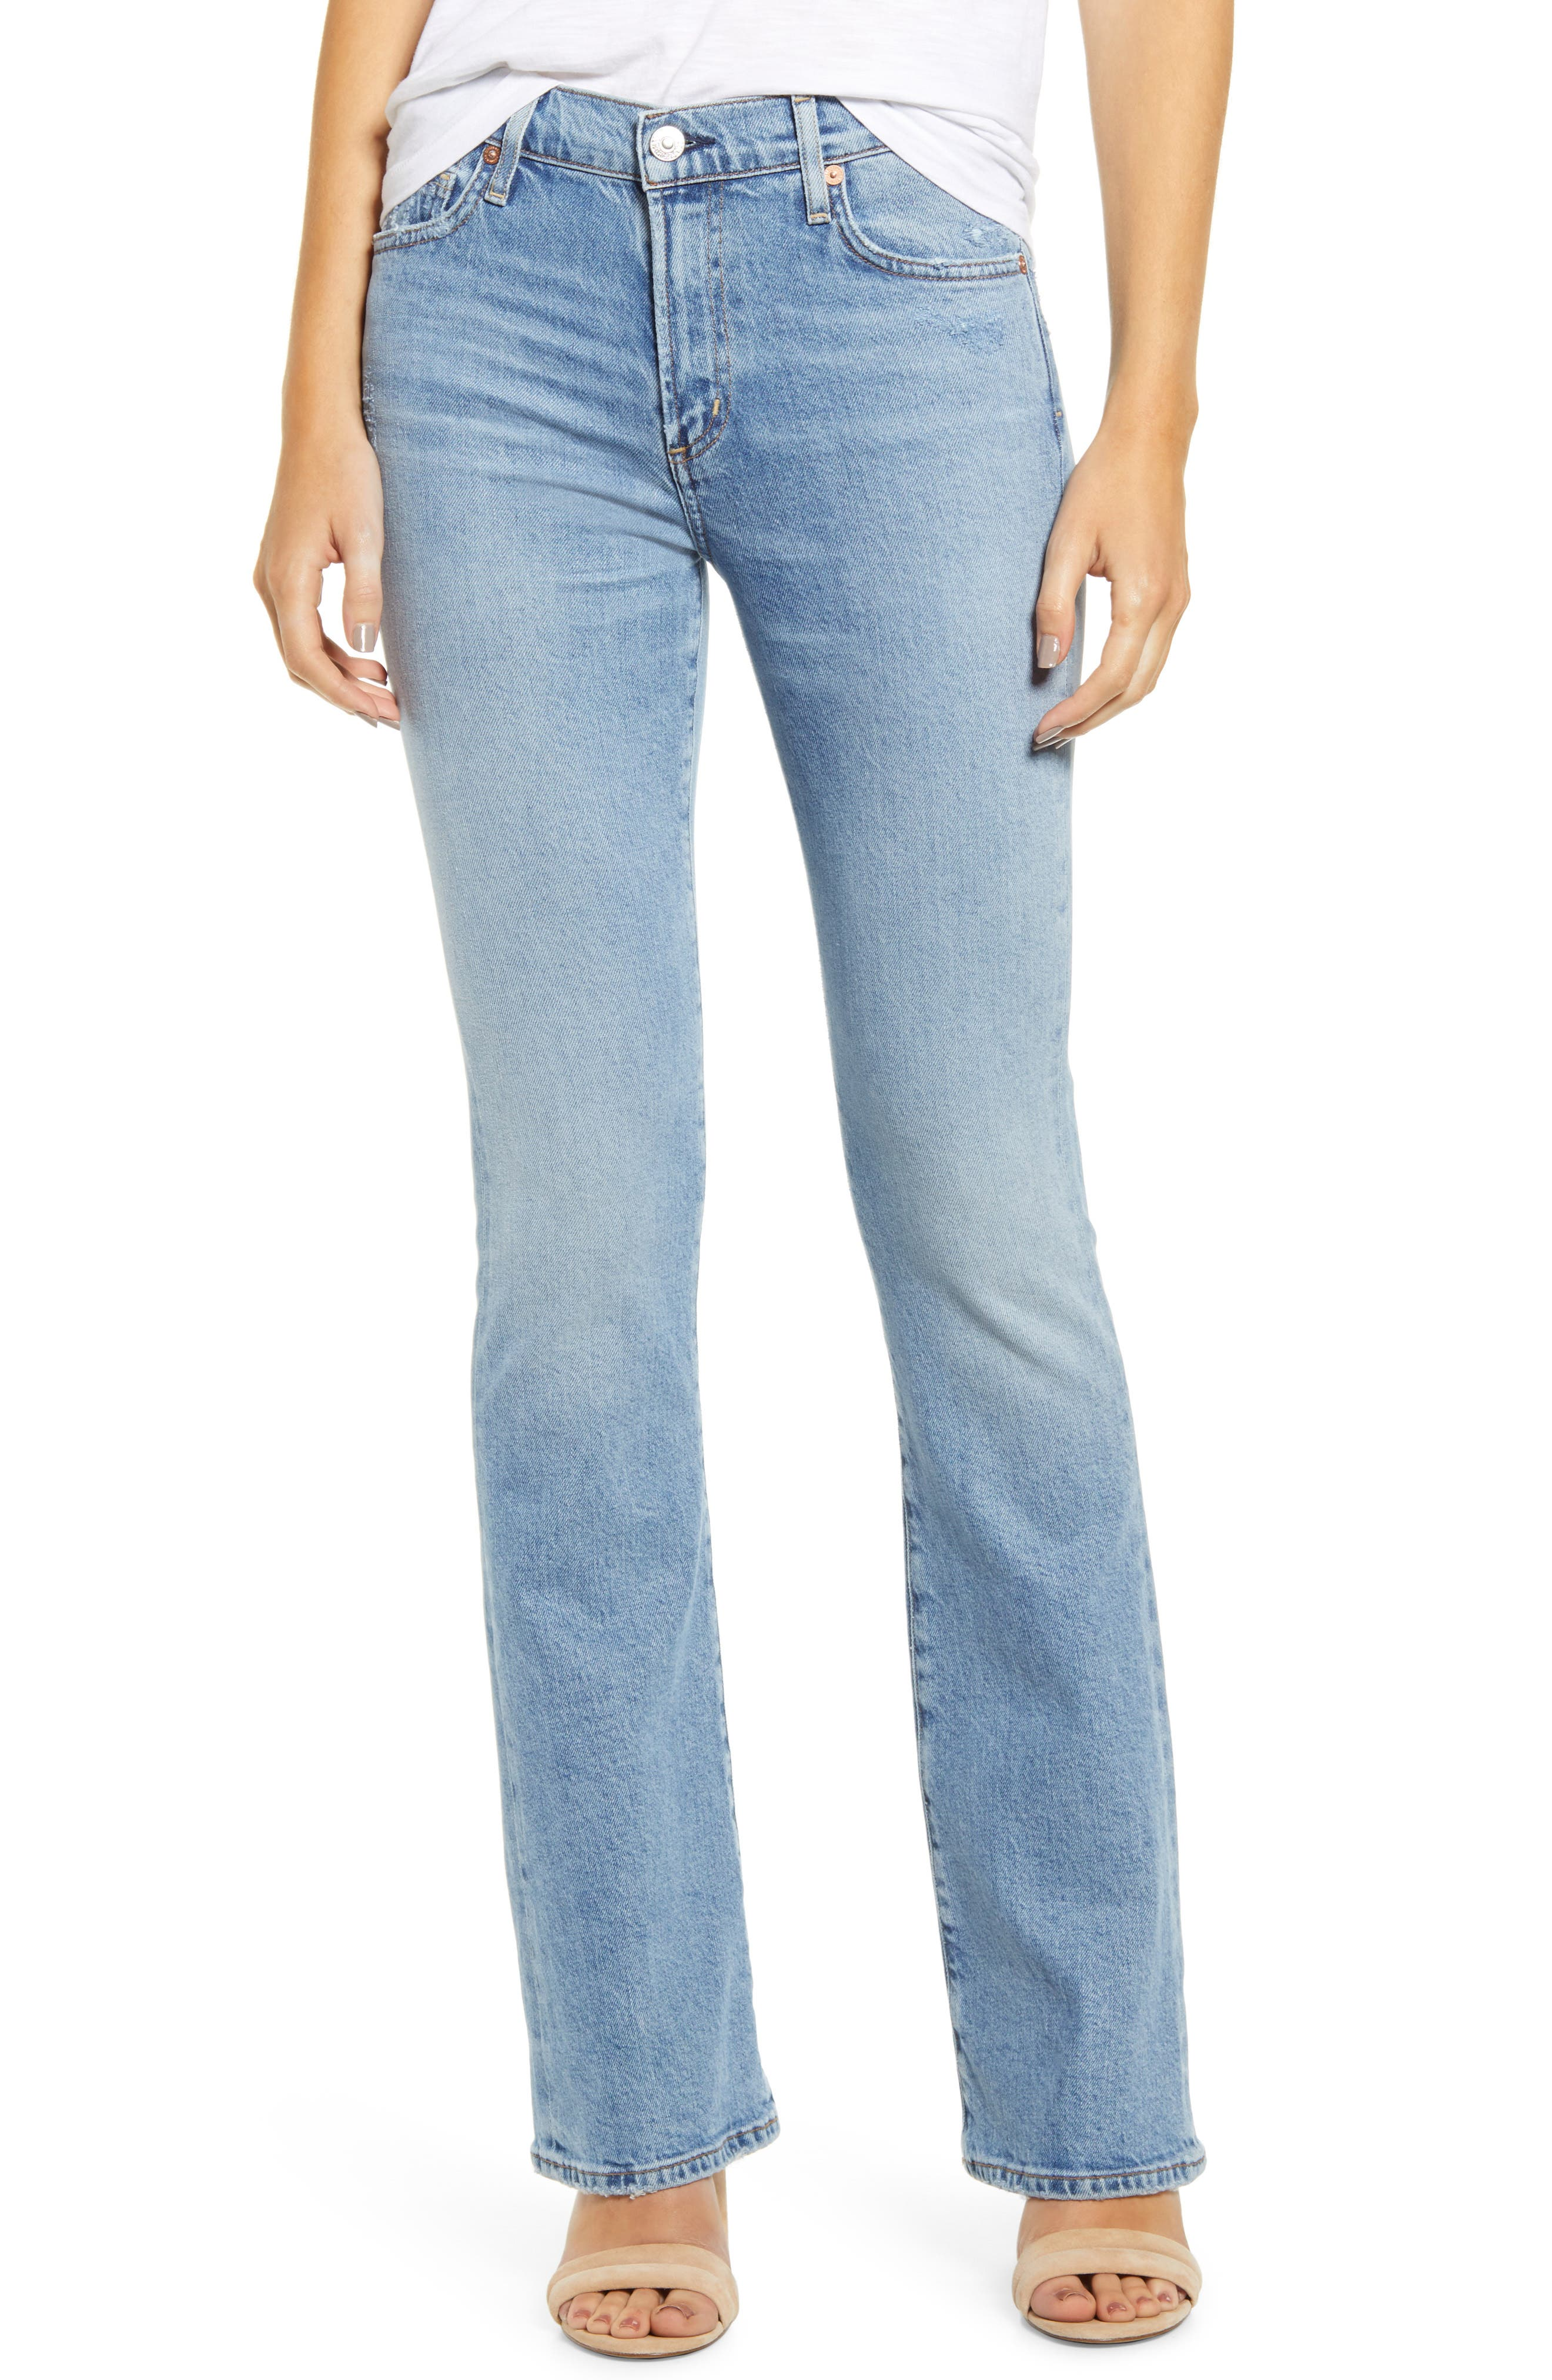 Citizen of Humanity Emanuelle Slim Bootcut Jeans (Chit Chat)